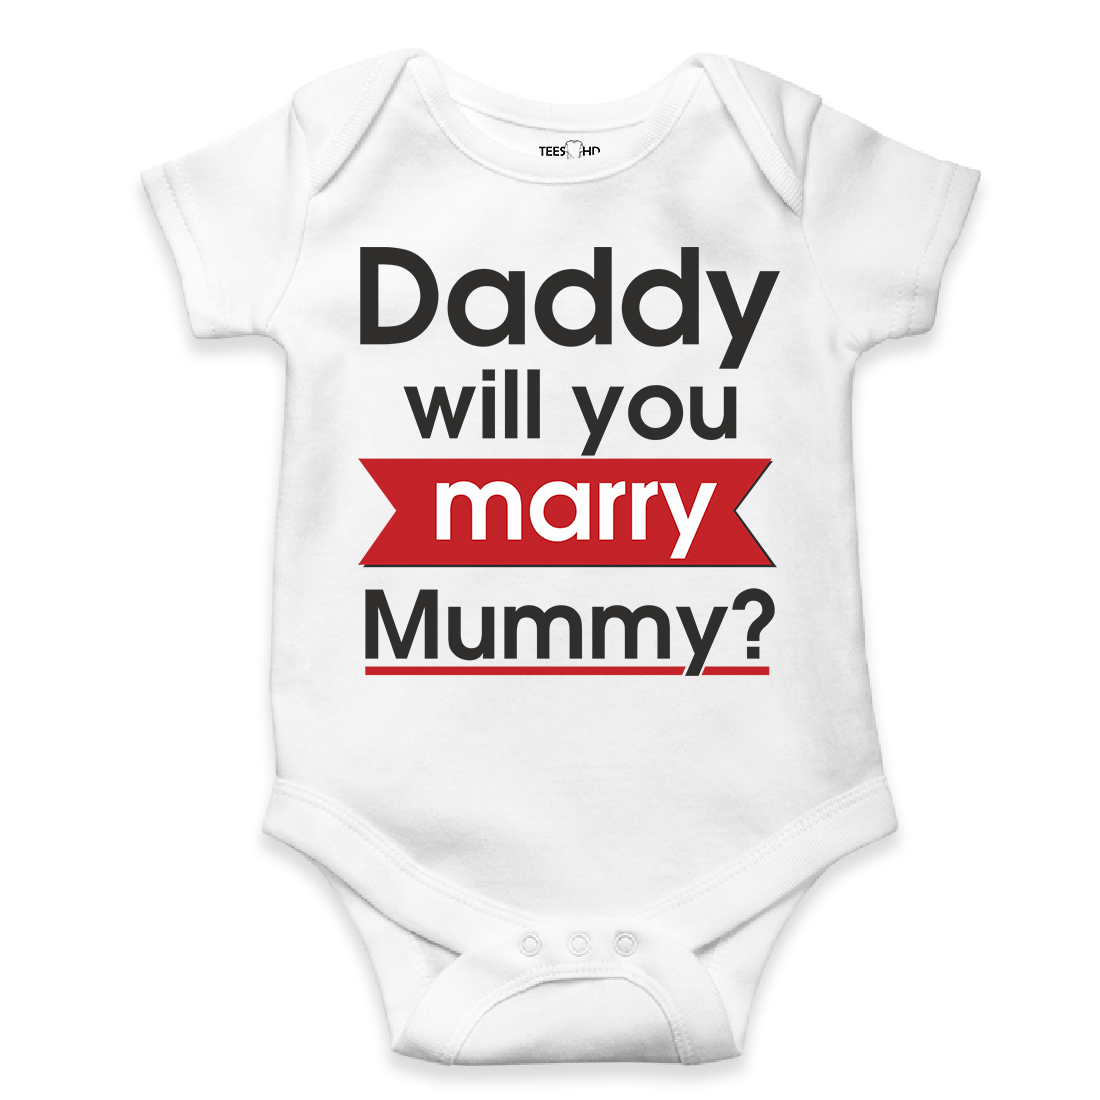 Baby Vests Bodysuits Long Sleeve Funny Printed HAPPY Birthday DADDY I LOVE YOU